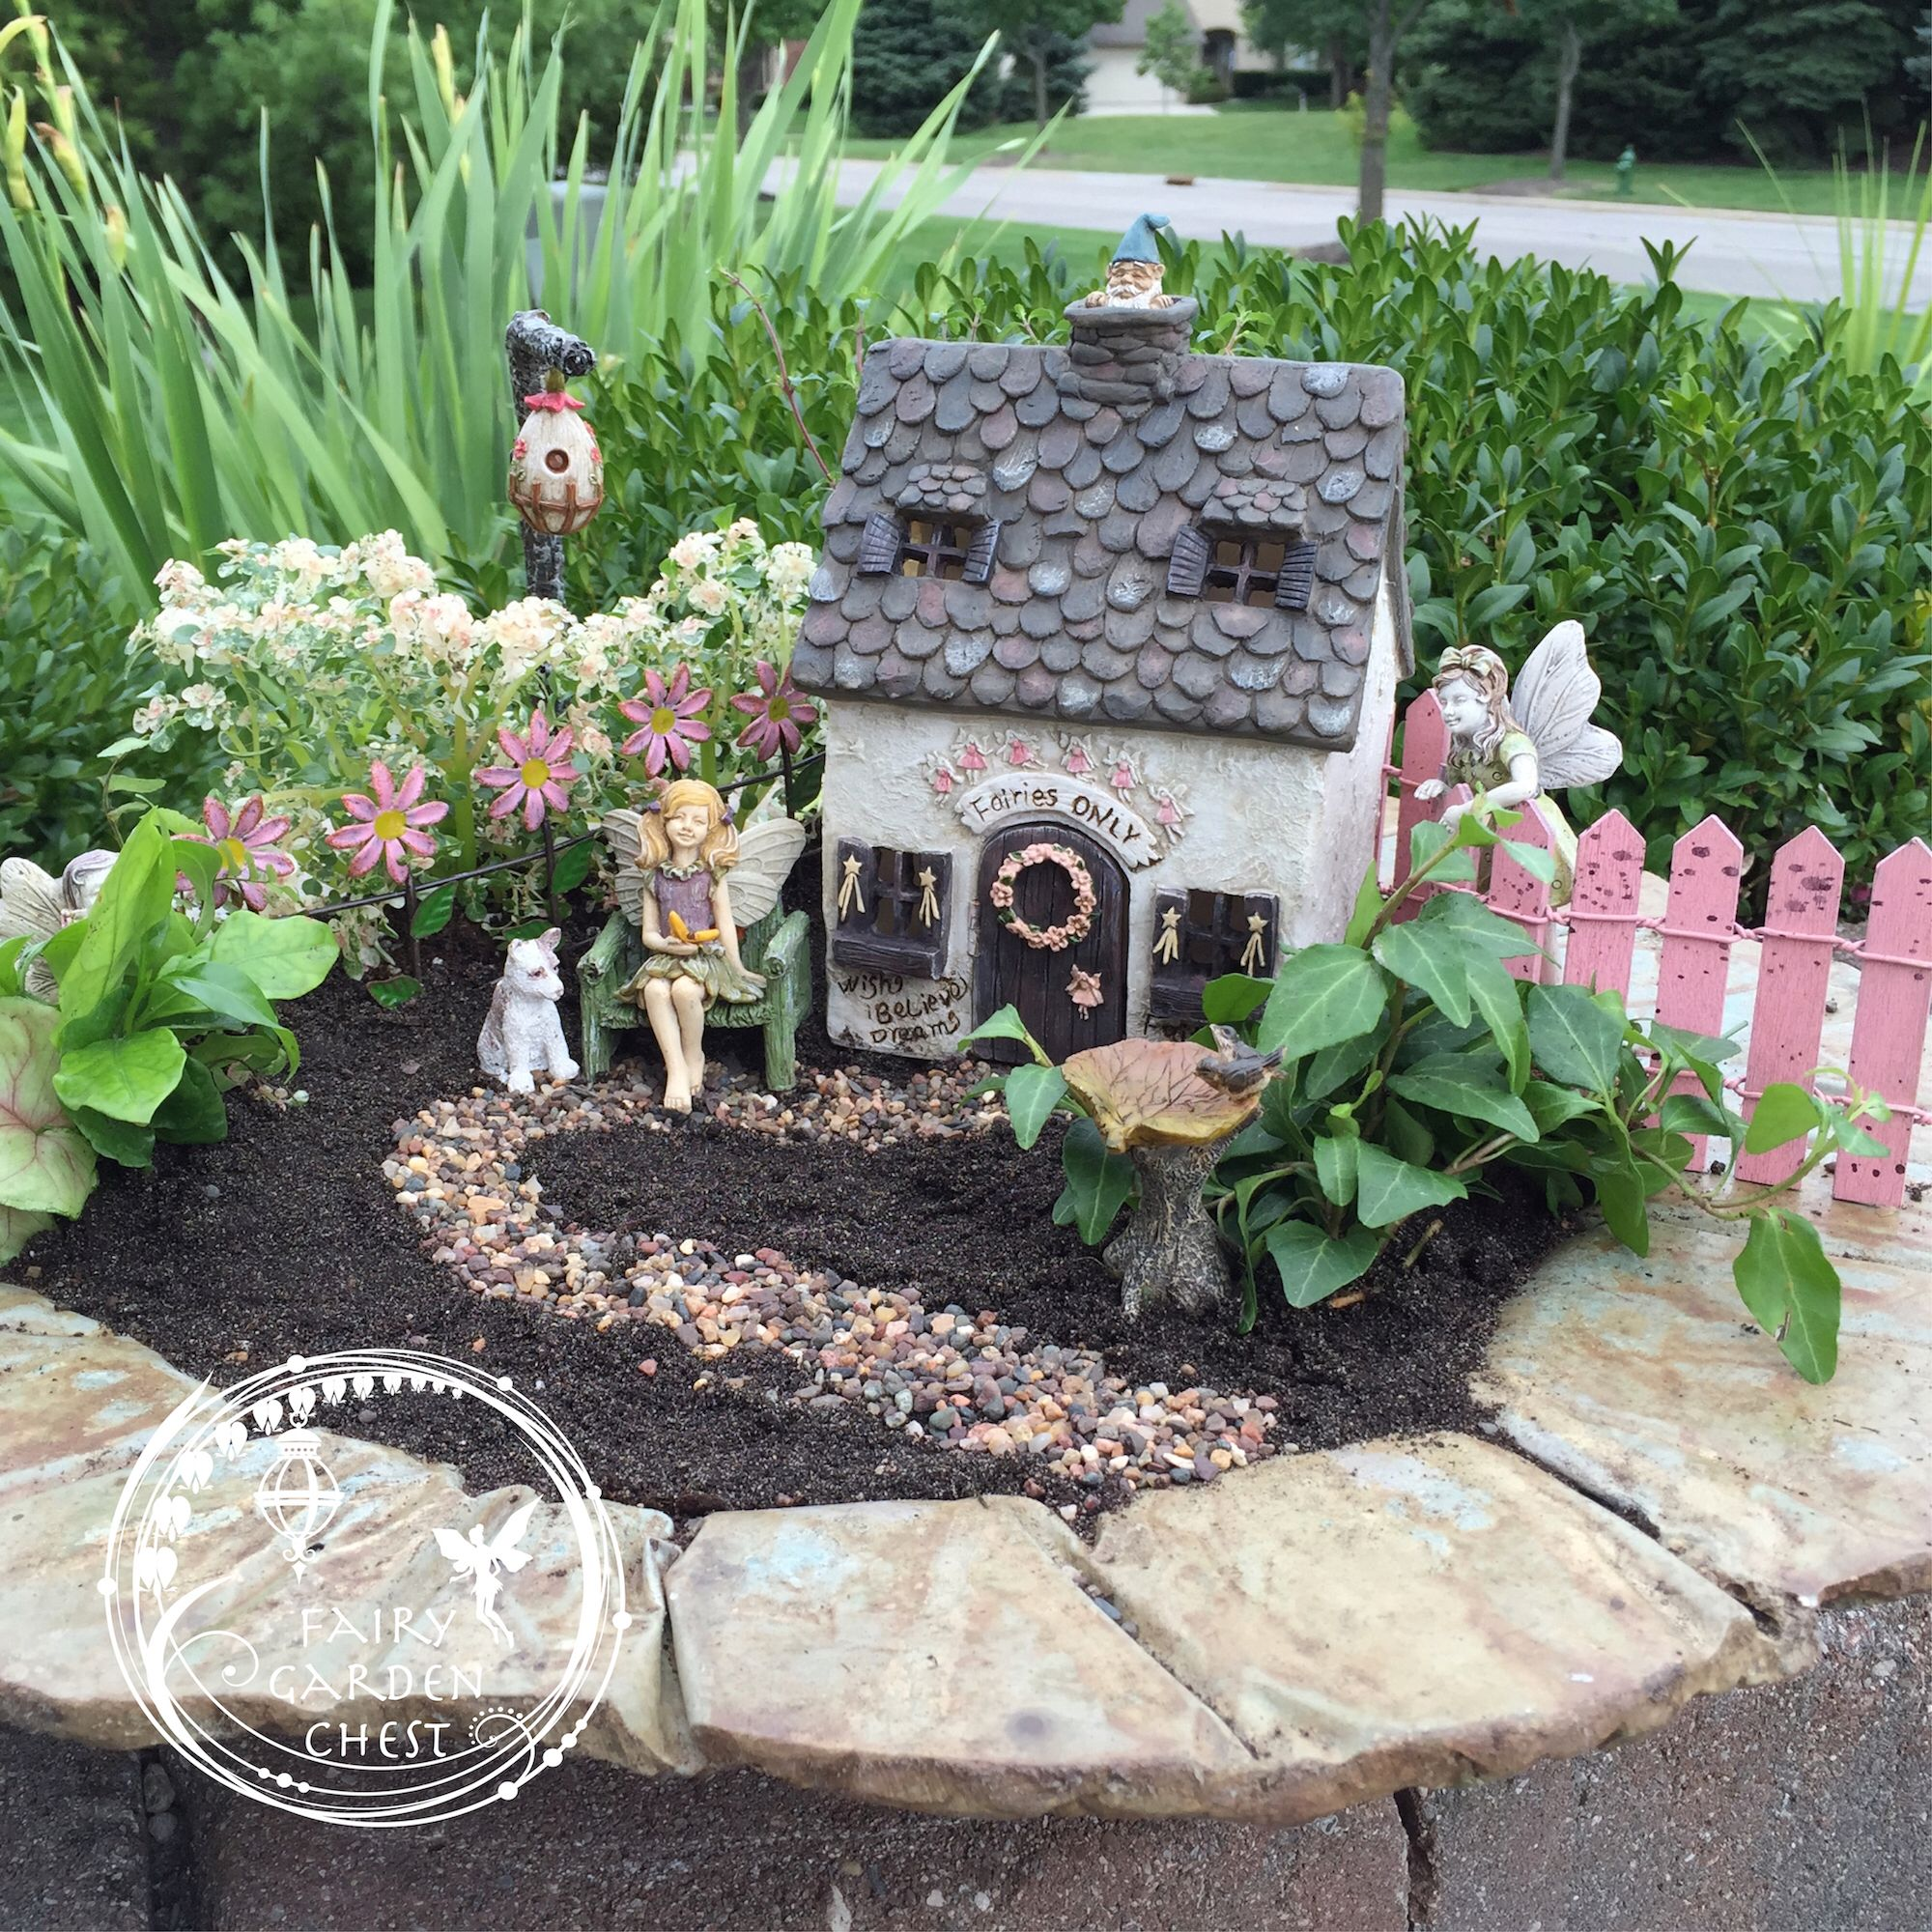 Fun Fairy Garden Gnome Homes Planning A Fairygnome Garden Definite Fairy Garden Curb Appeal Do You Love Miniature Gnome If You Definite Fairy Garden Curb Appeal Do You Love Miniature Gnome garden Fairy Gnome Garden